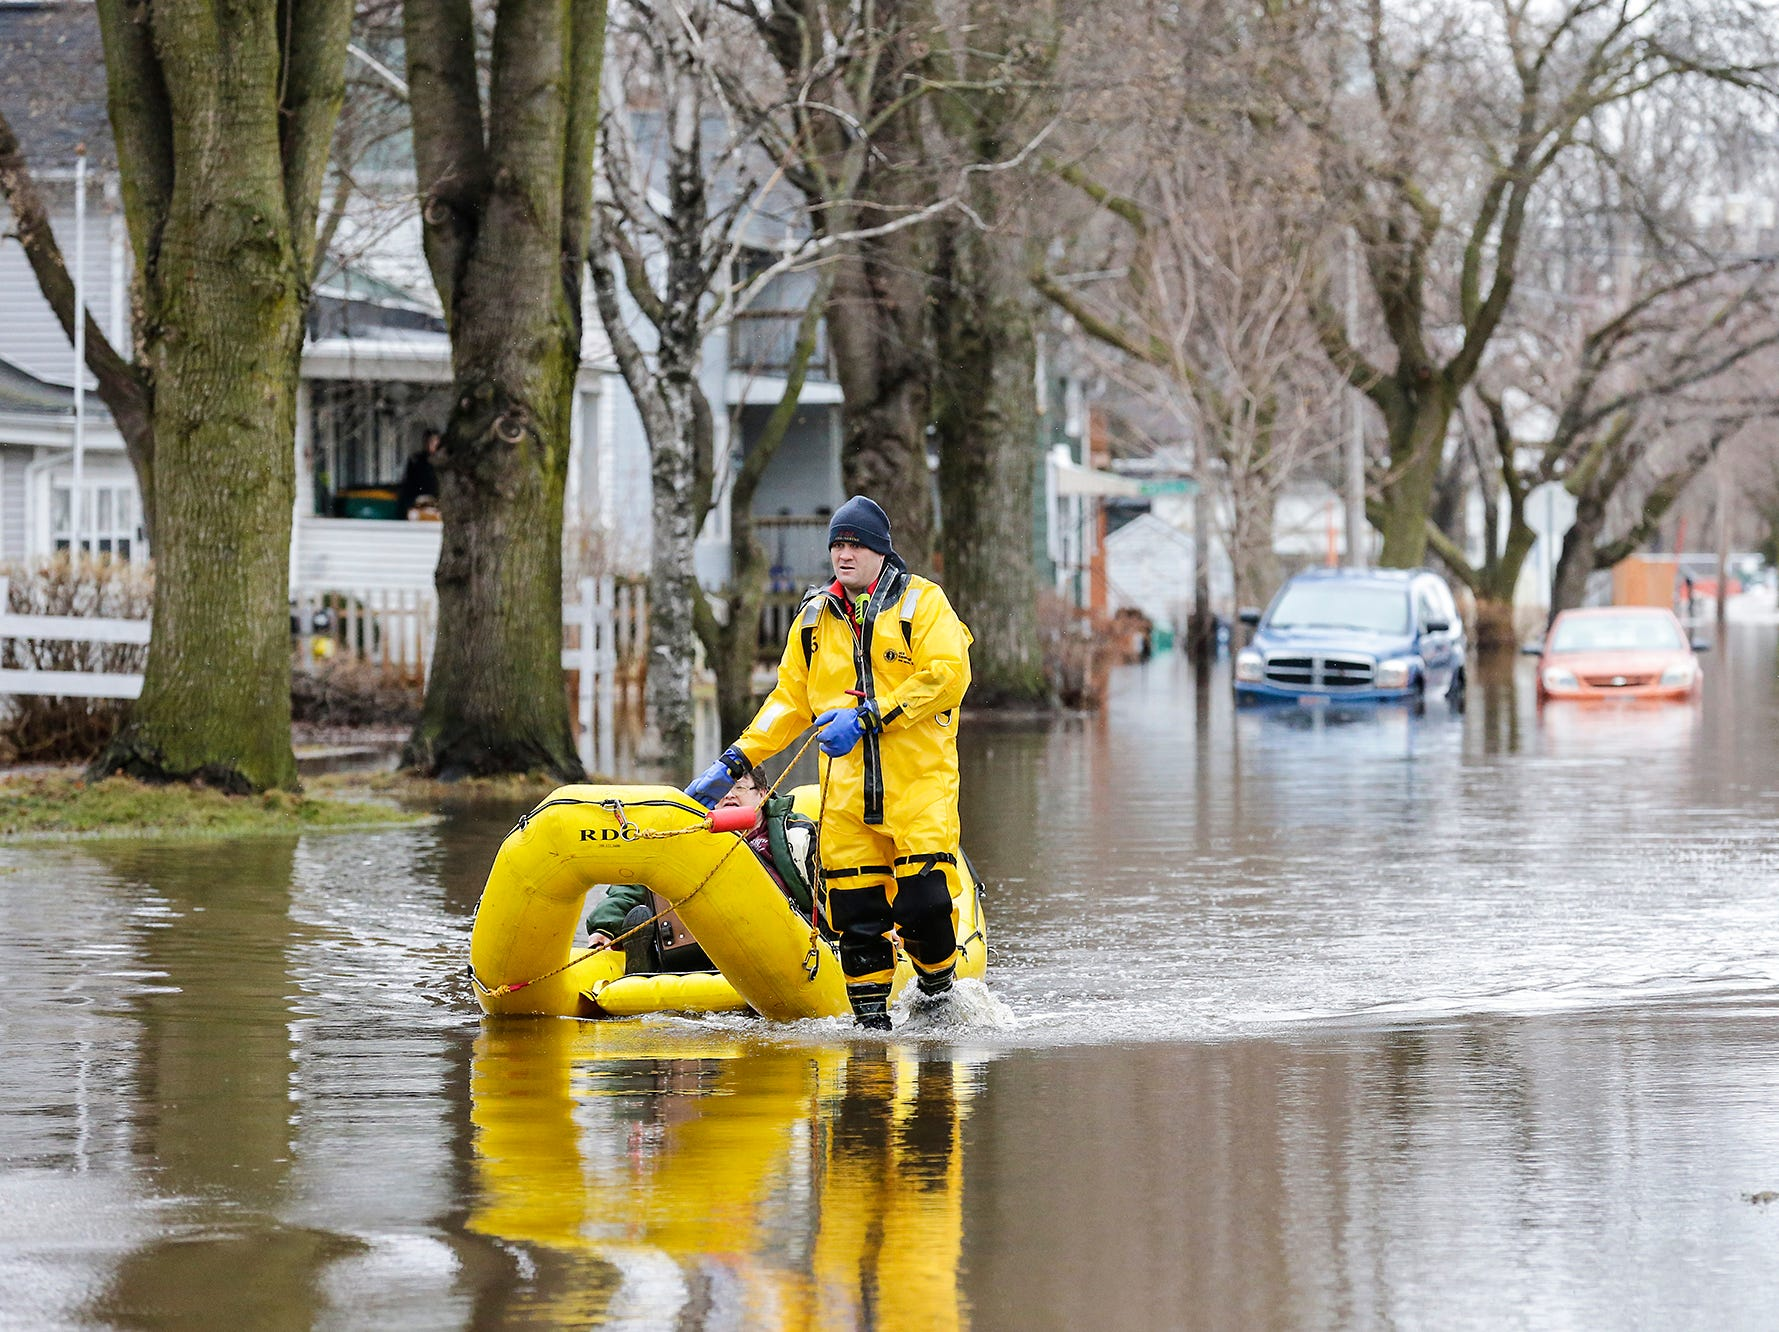 A Fond du Lac Fire/Rescue member brings a woman to safety after evacuating her Friday, March 15, 2019 from her house on Gould Street in Fond du Lac, Wis. Ice jams on the east branch of the Fond du Lac River and heavy rain caused widespread flooding problems in the city on Thursday the 14th. Doug Raflik/USA TODAY NETWORK-Wisconsin